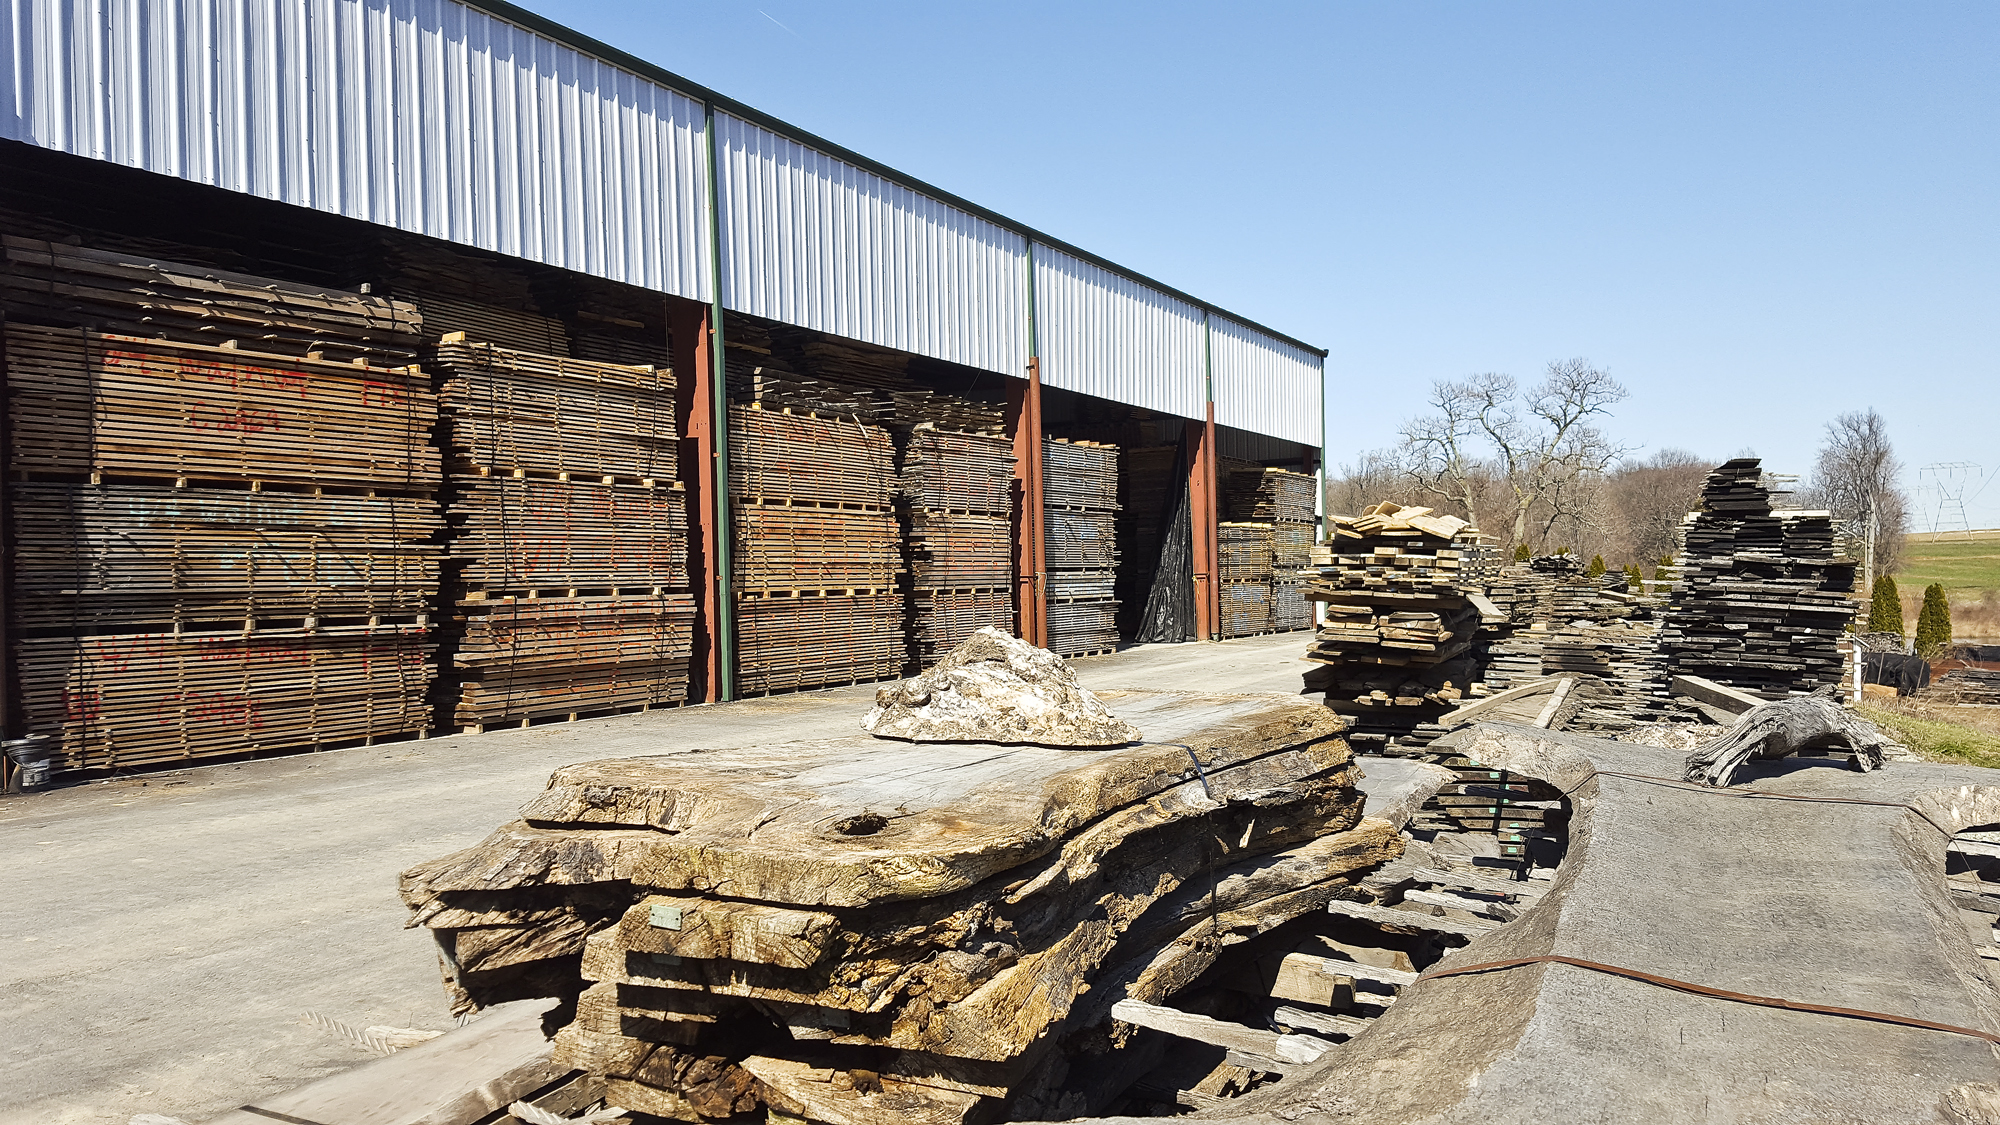 Buy figured wood, exotic lumber, book-matched boards, table top slabs, burls, guitar sets and more at Hearne Hardwoods Inc.